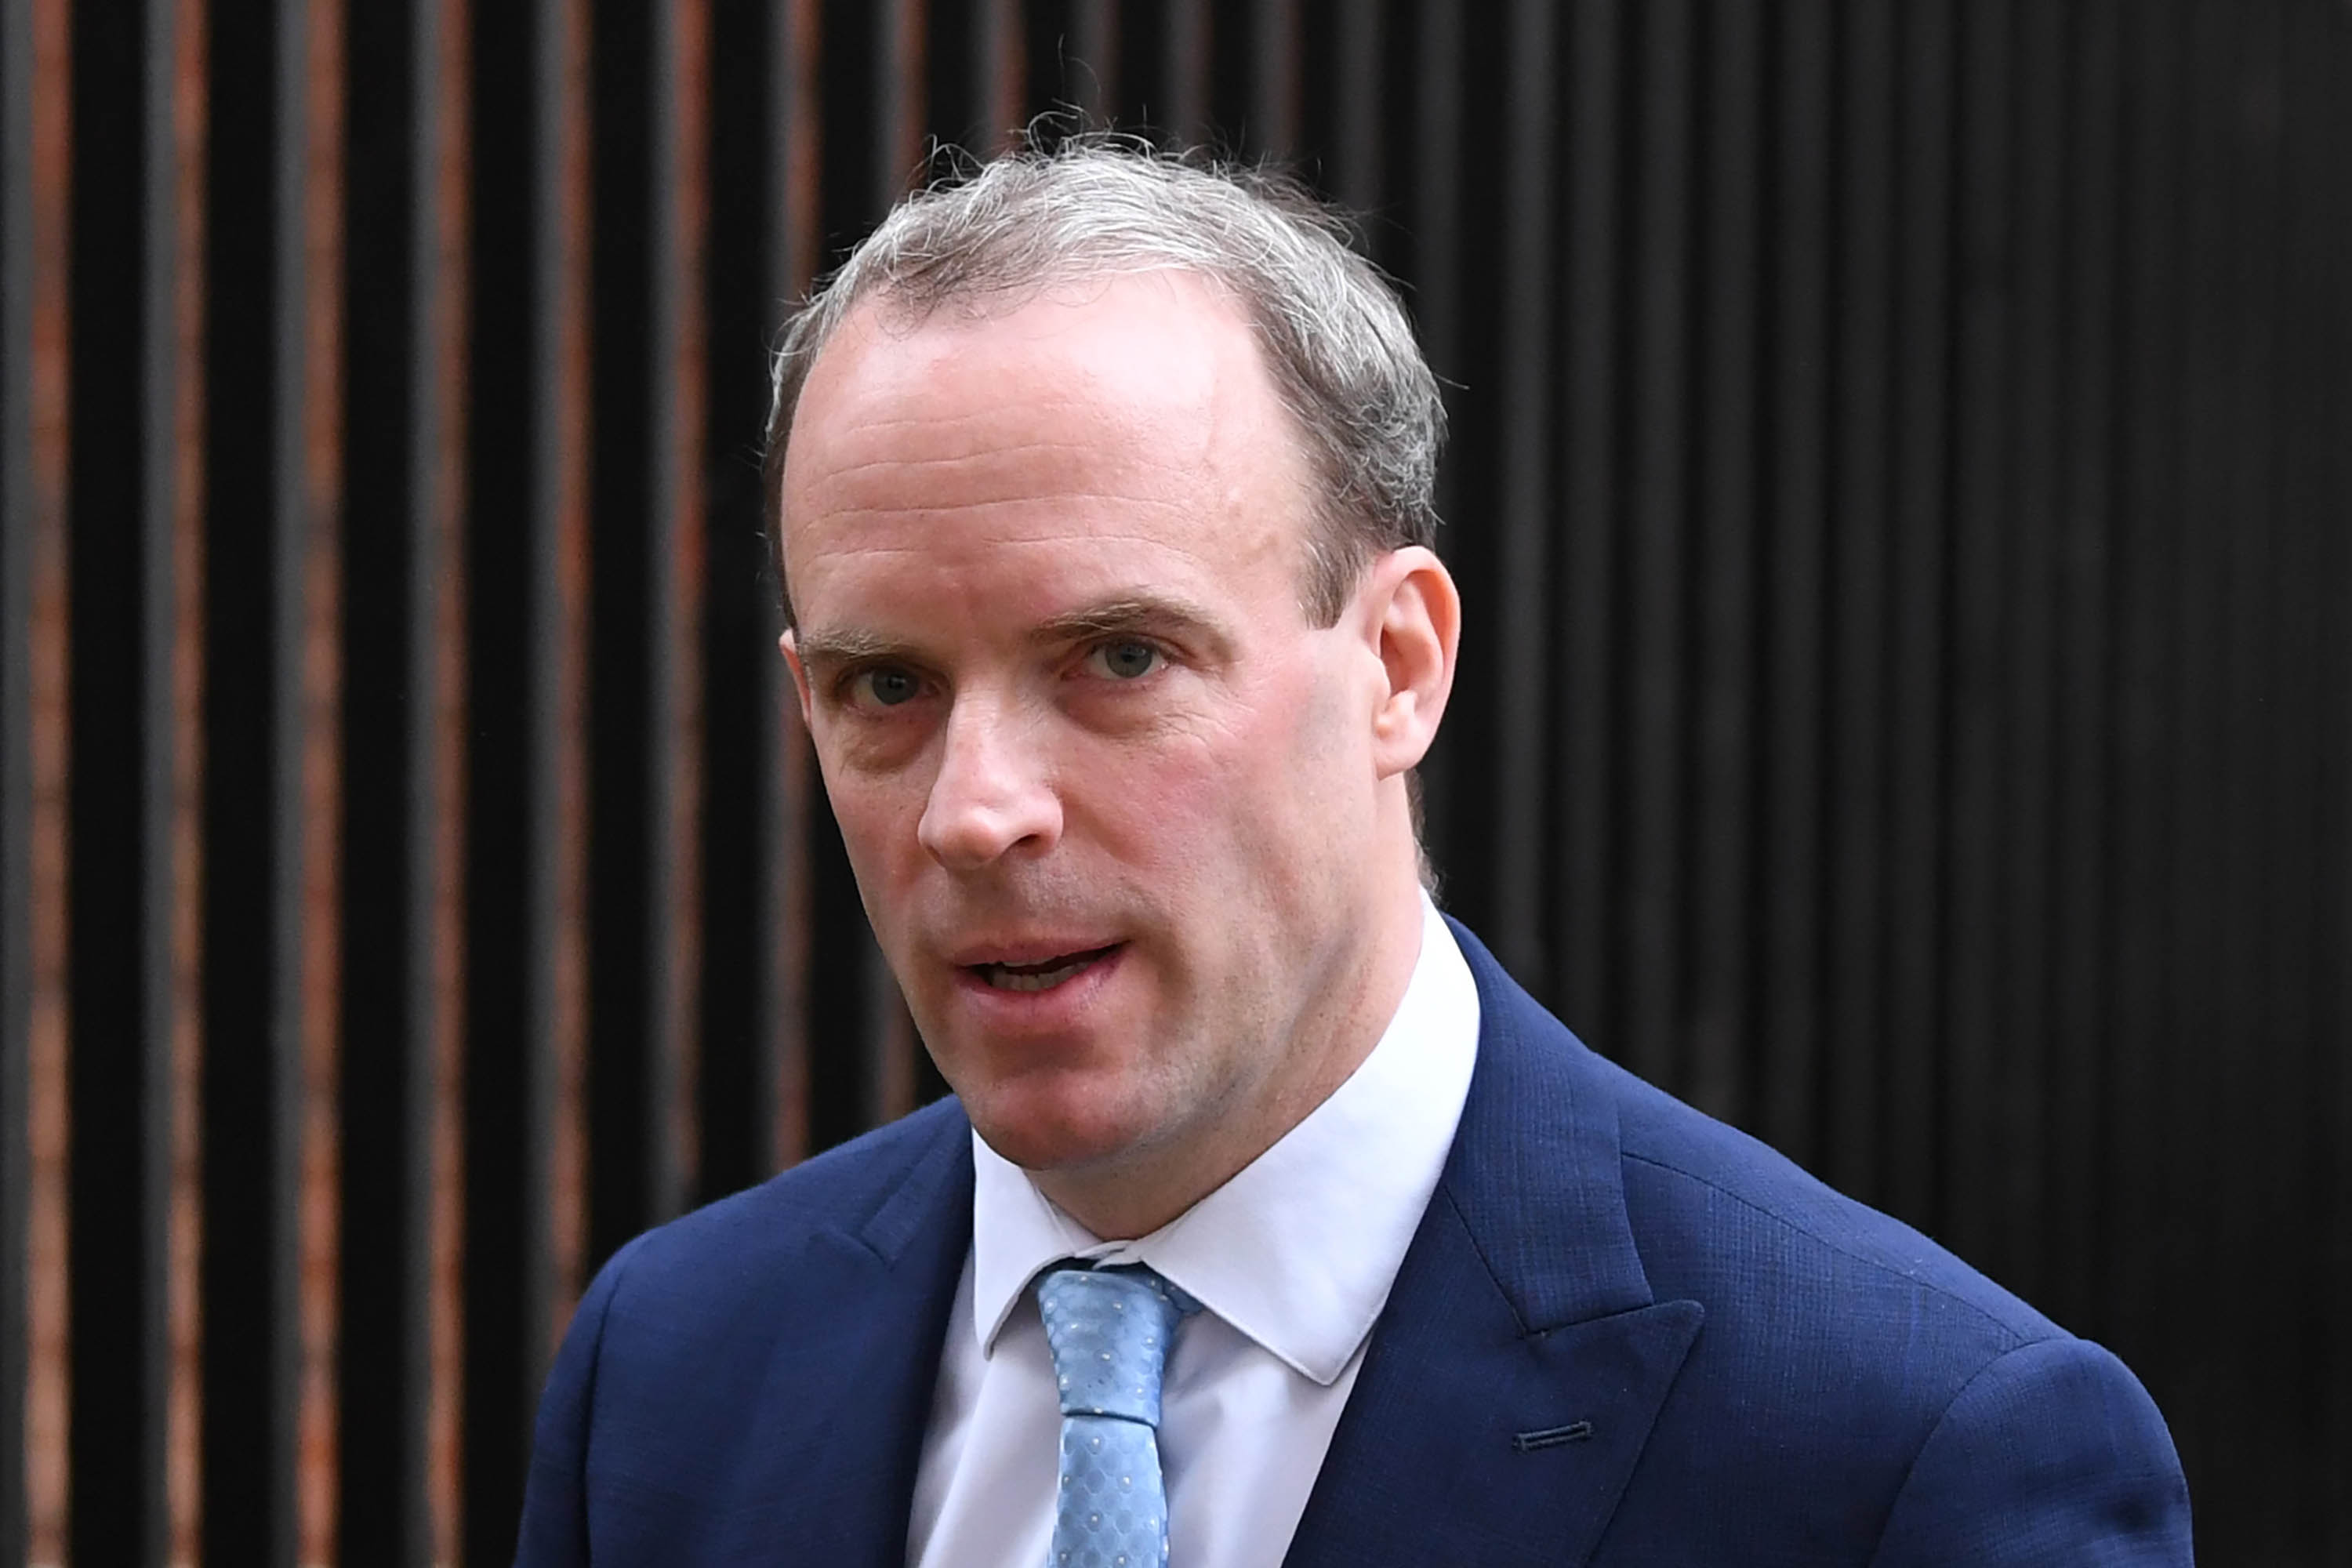 Who is Dominic Raab? The Brexiteer ex-lawyer deputizing for Boris Johnson